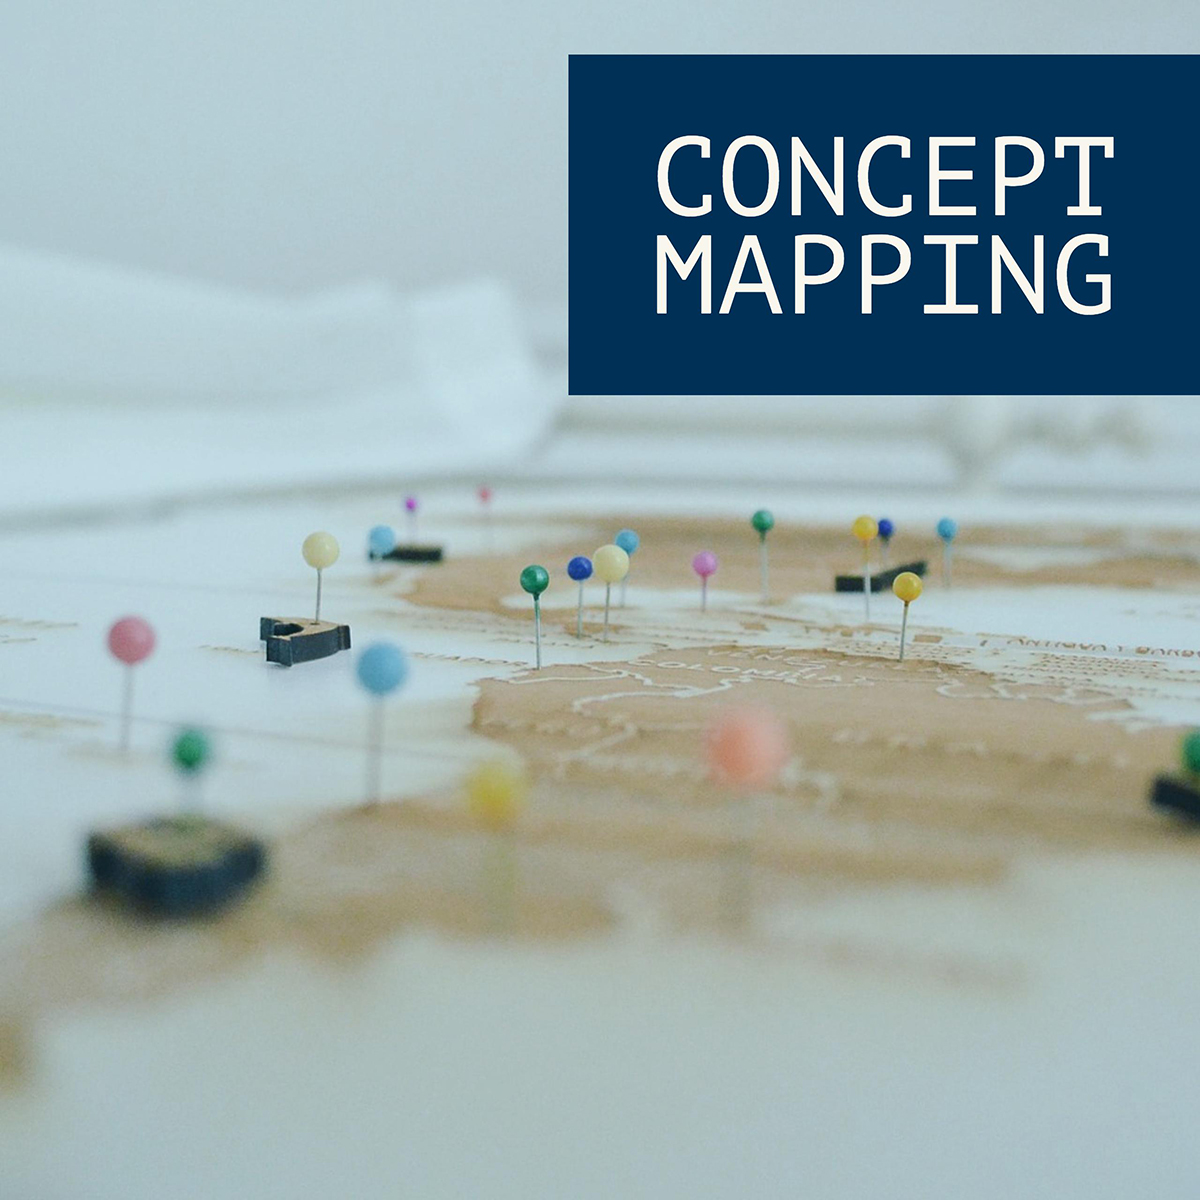 concept mapping business development course